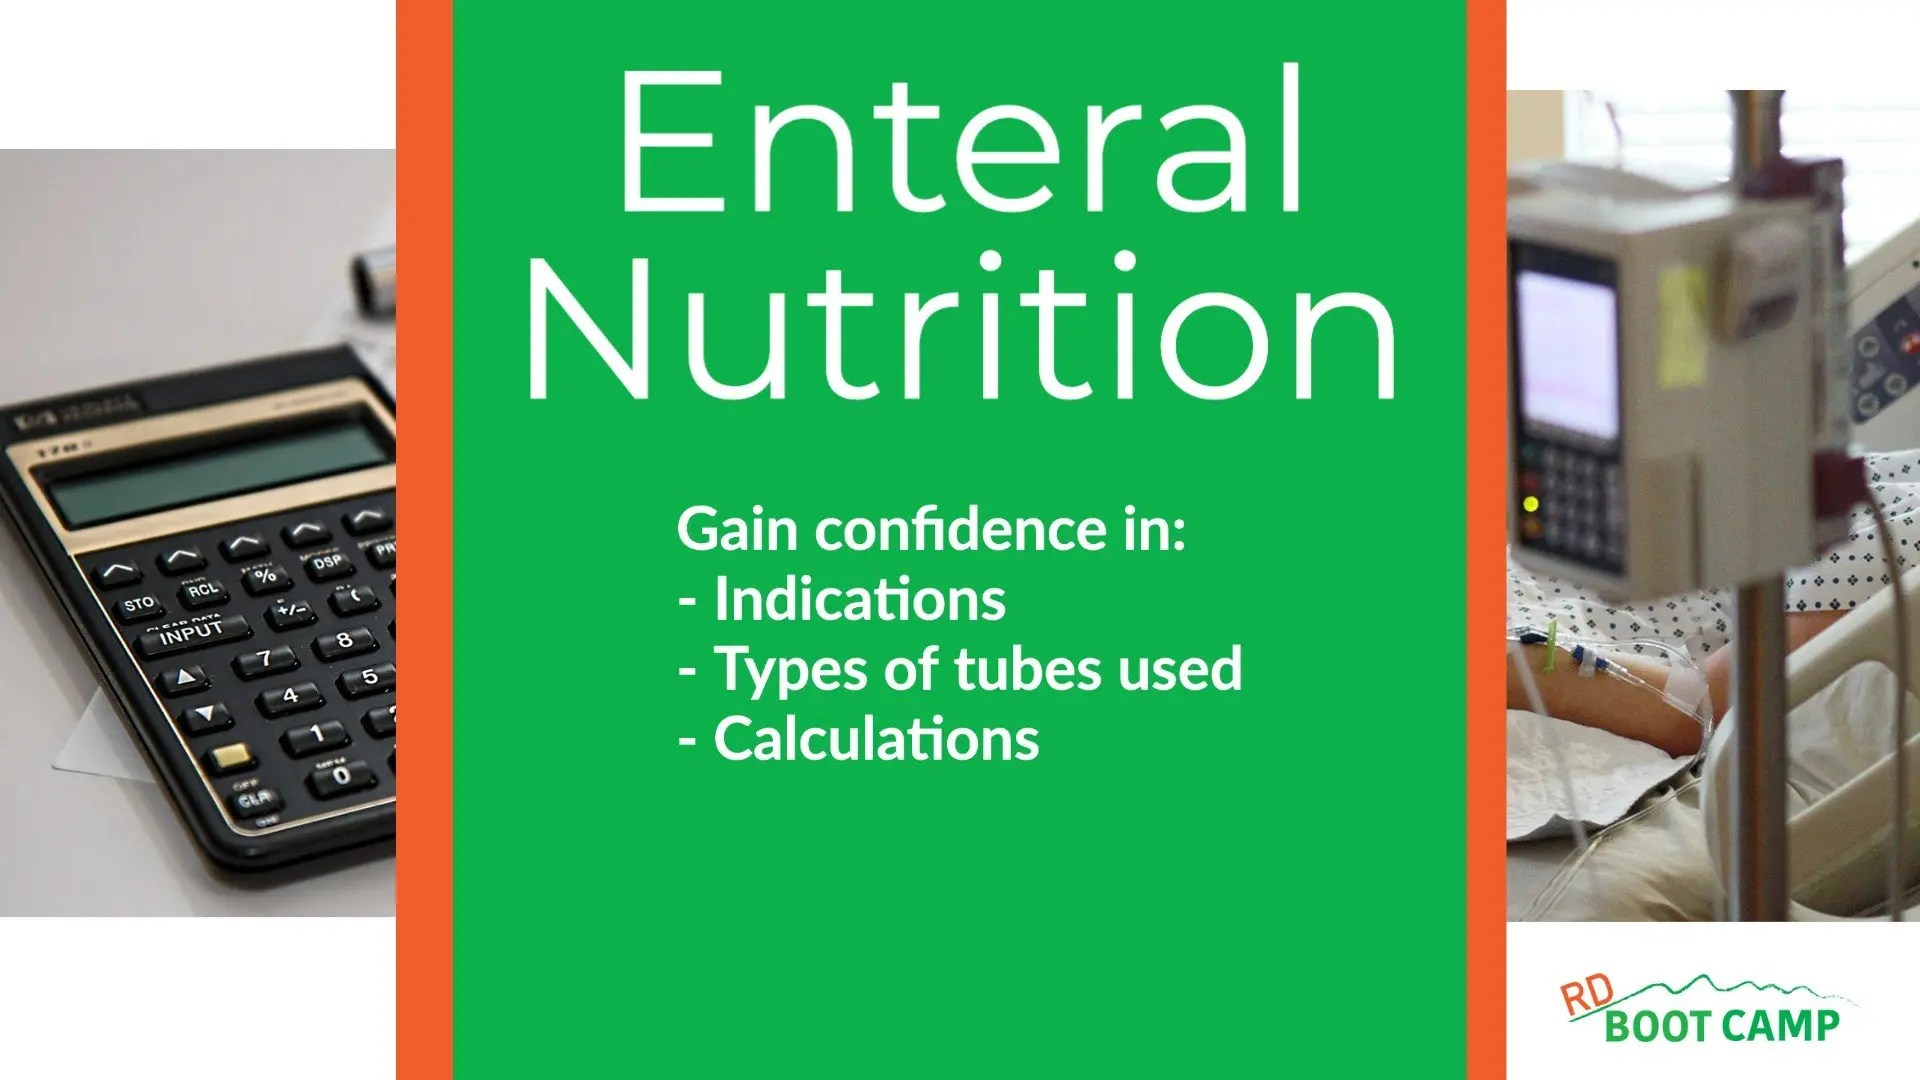 Class header for Enteral Nutrition. Gain Confidence in indications, types of tubes used, and calculations